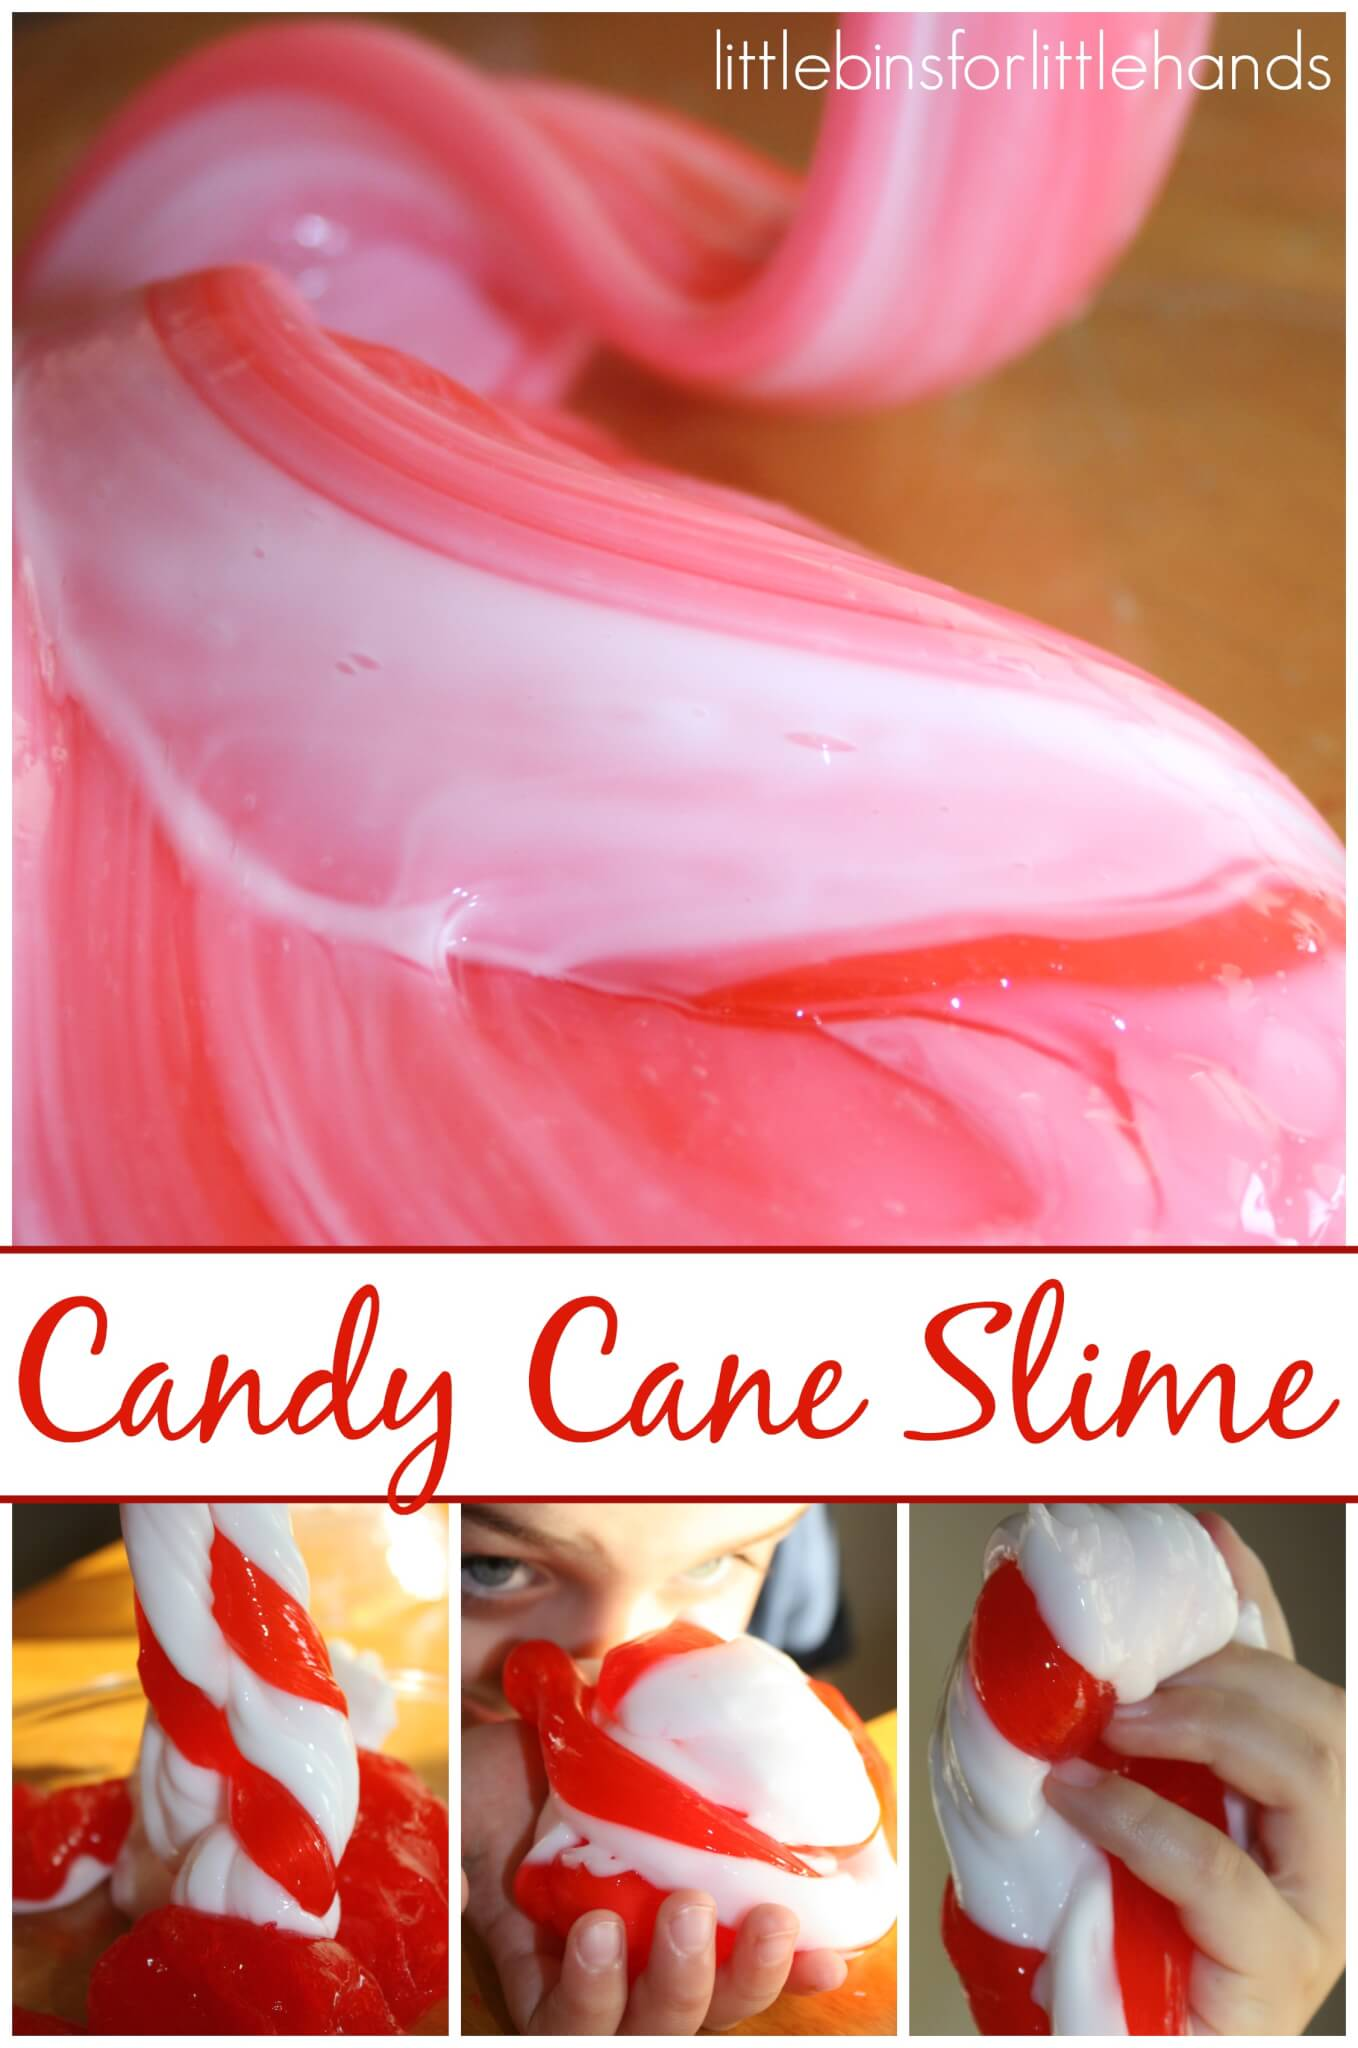 Candy Cane Slime Recipe And Christmas Science Activity